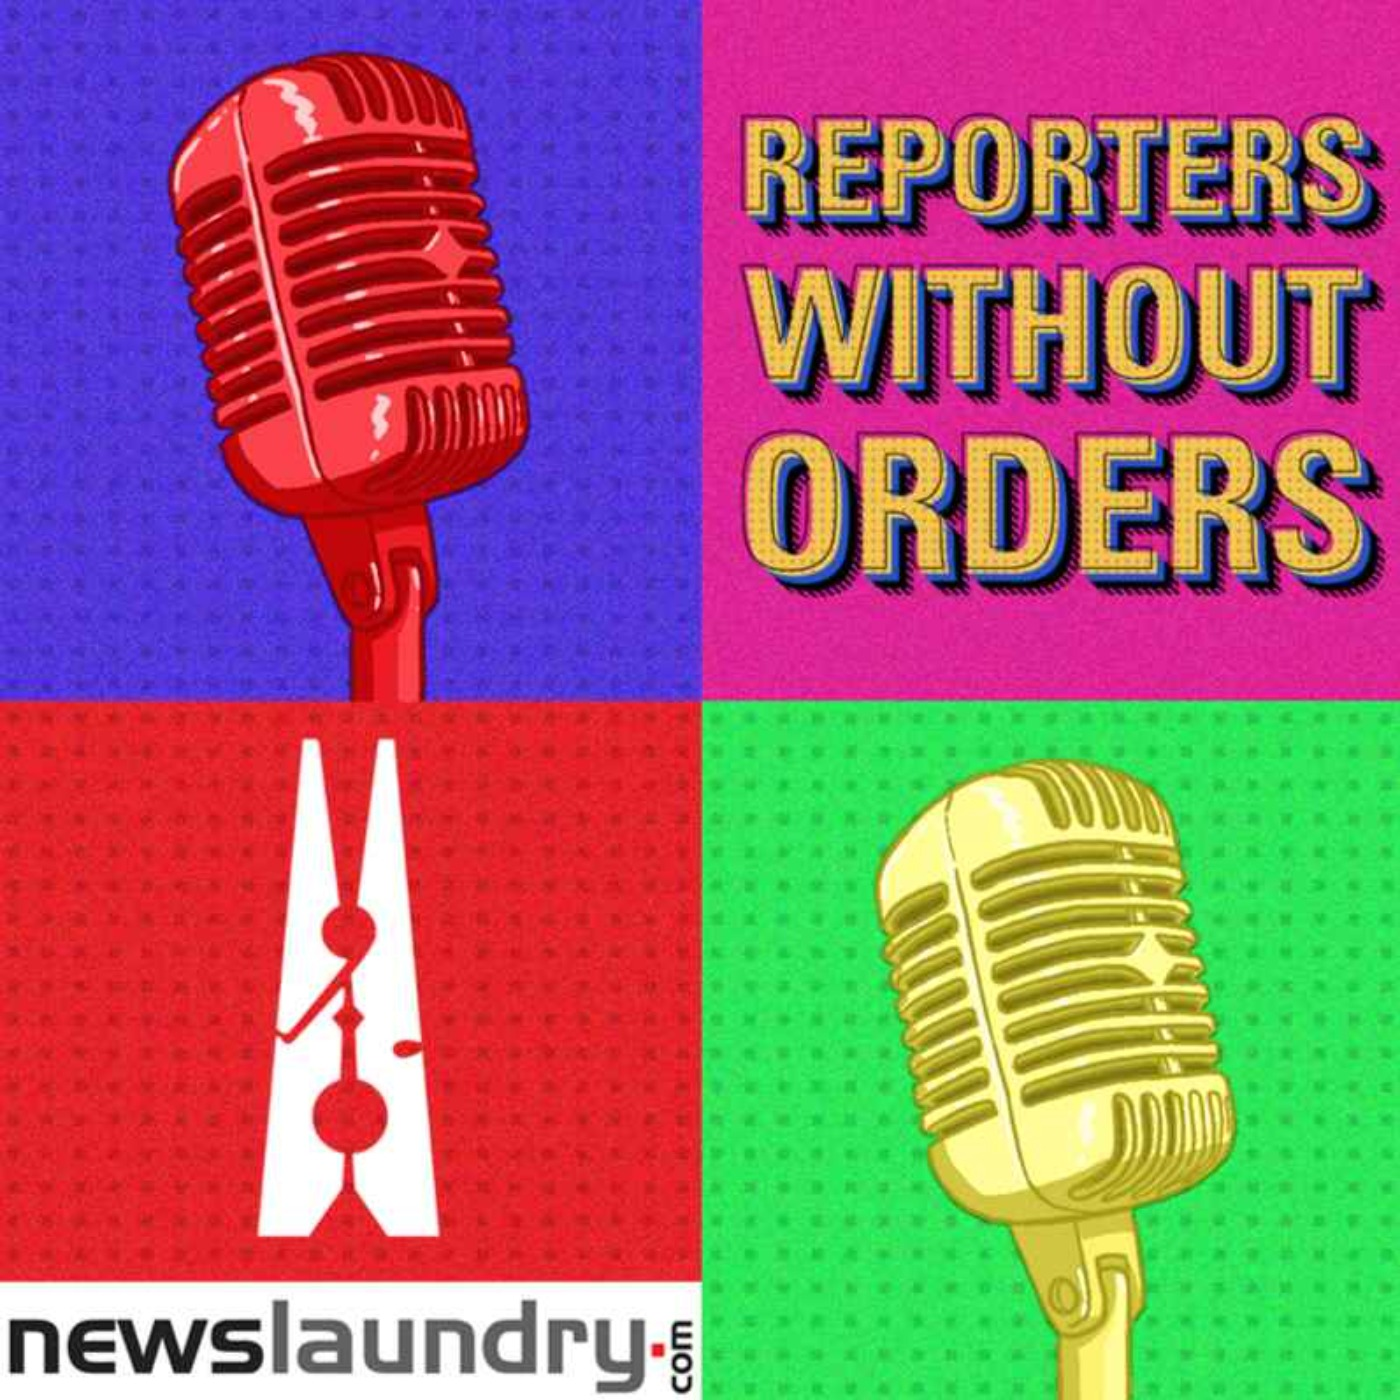 Reporters Without Orders Ep 136: Hathras and the political dodge